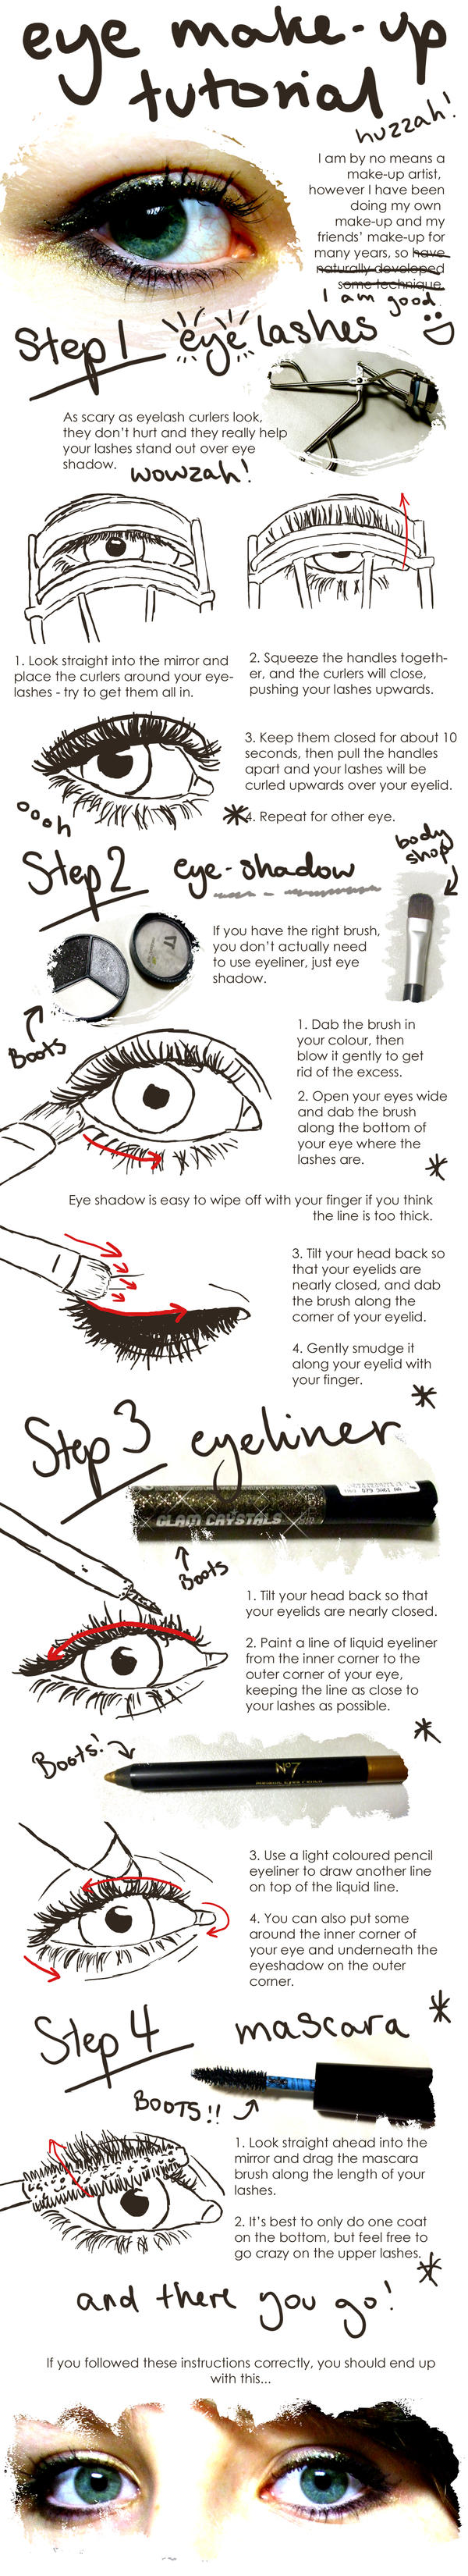 Eye Make-Up Tutorial by lemonfox2002